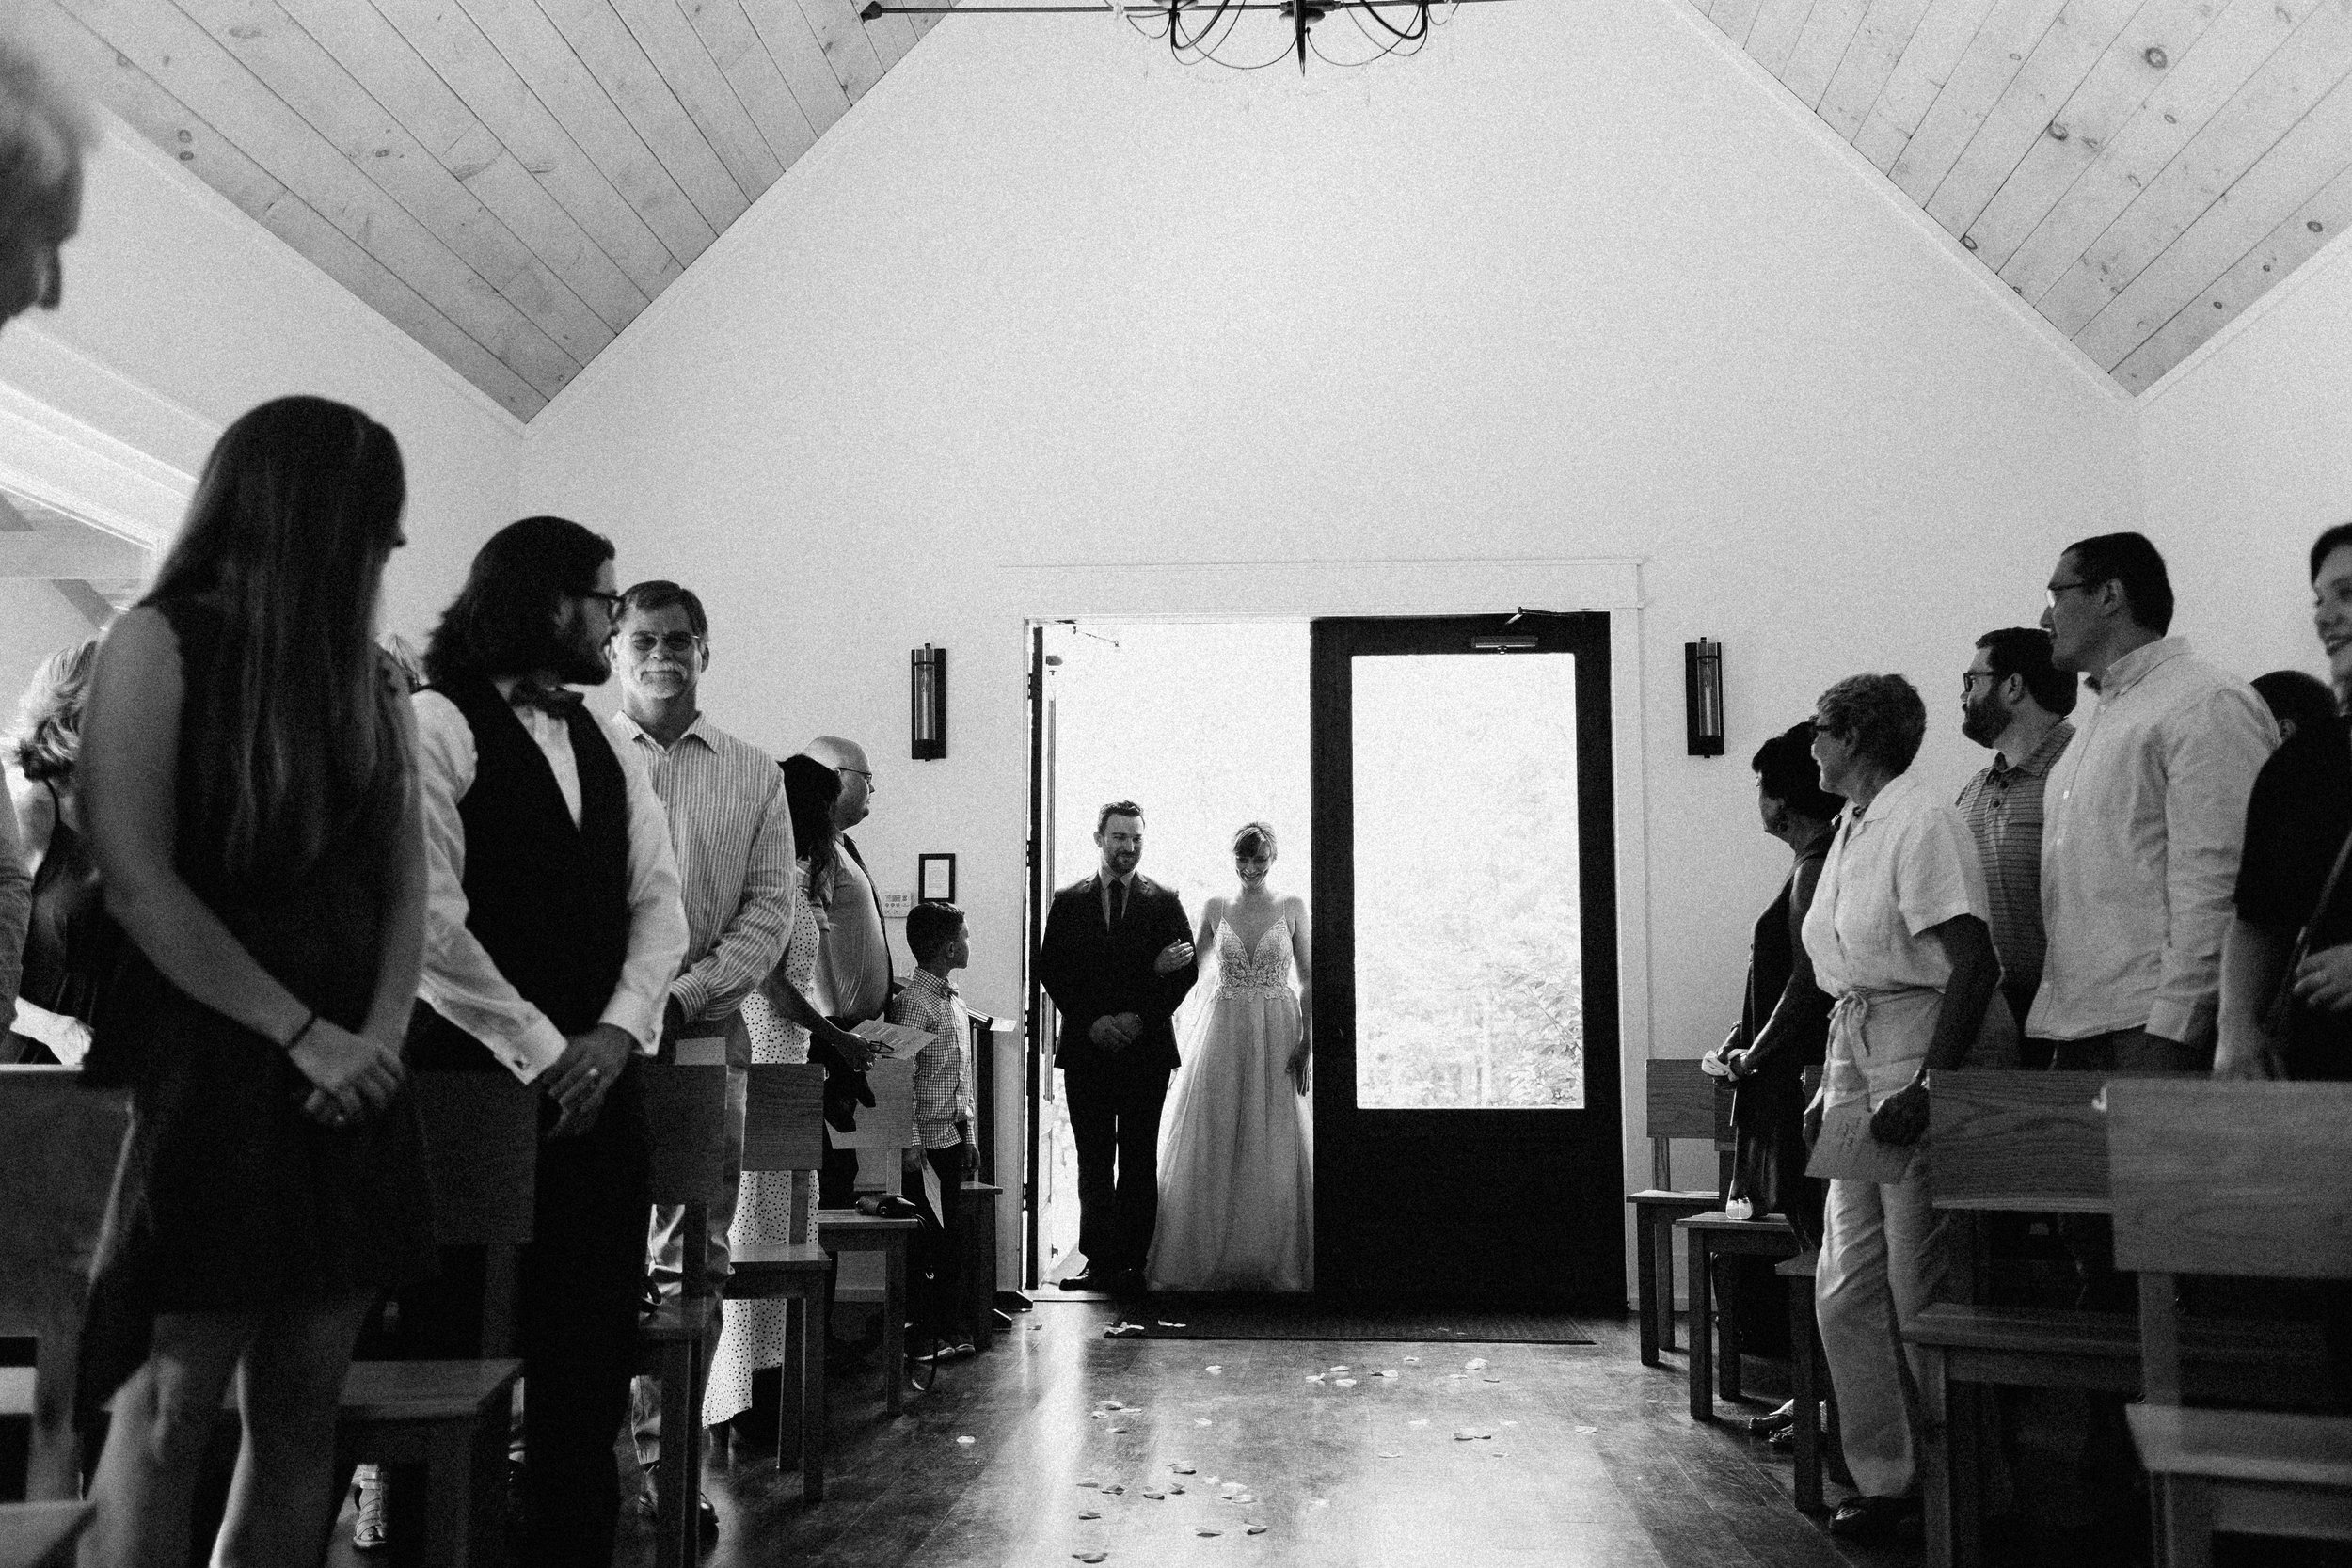 dahlonega_juliette_chapel_photojournalism_atlanta_wedding_photographers_1701.jpg